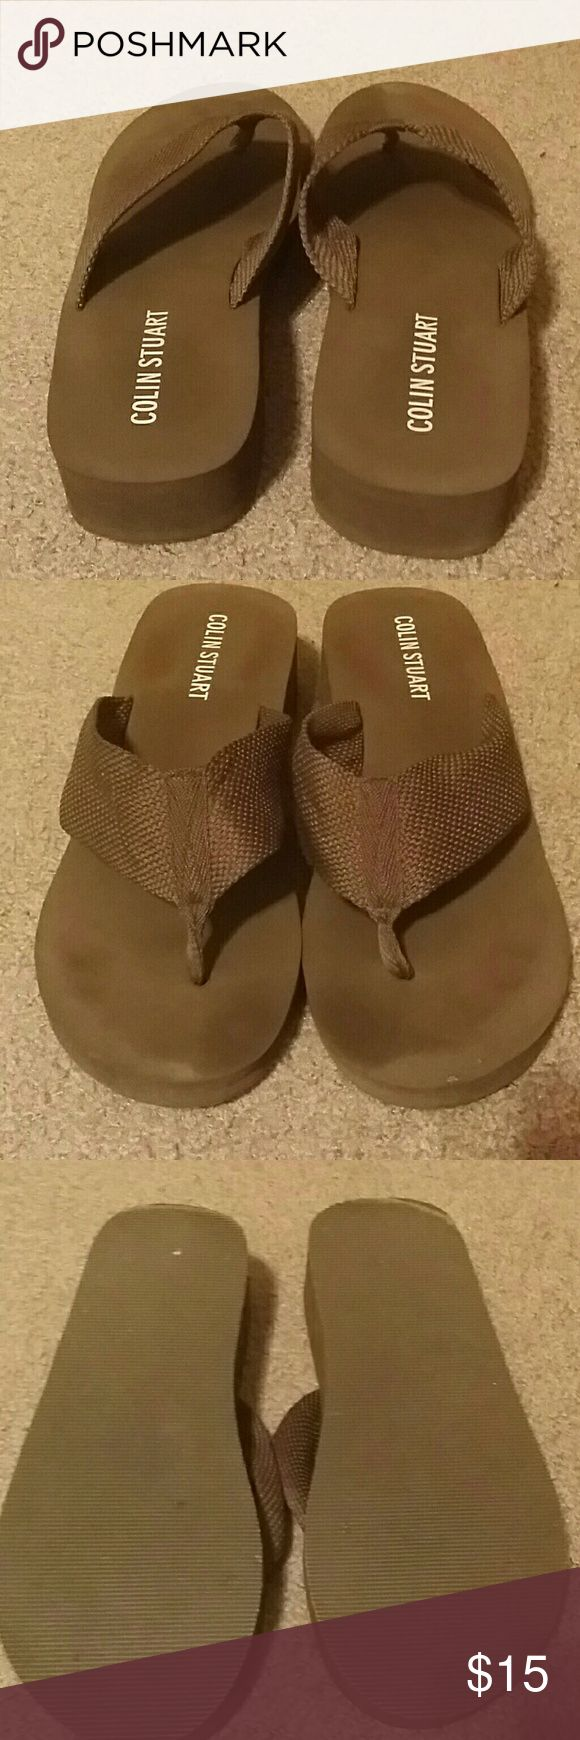 Colin Stuart flip flops Colin Stuart flip flops one in black and 1 in brown never been worn Colin Stuart Shoes Sandals